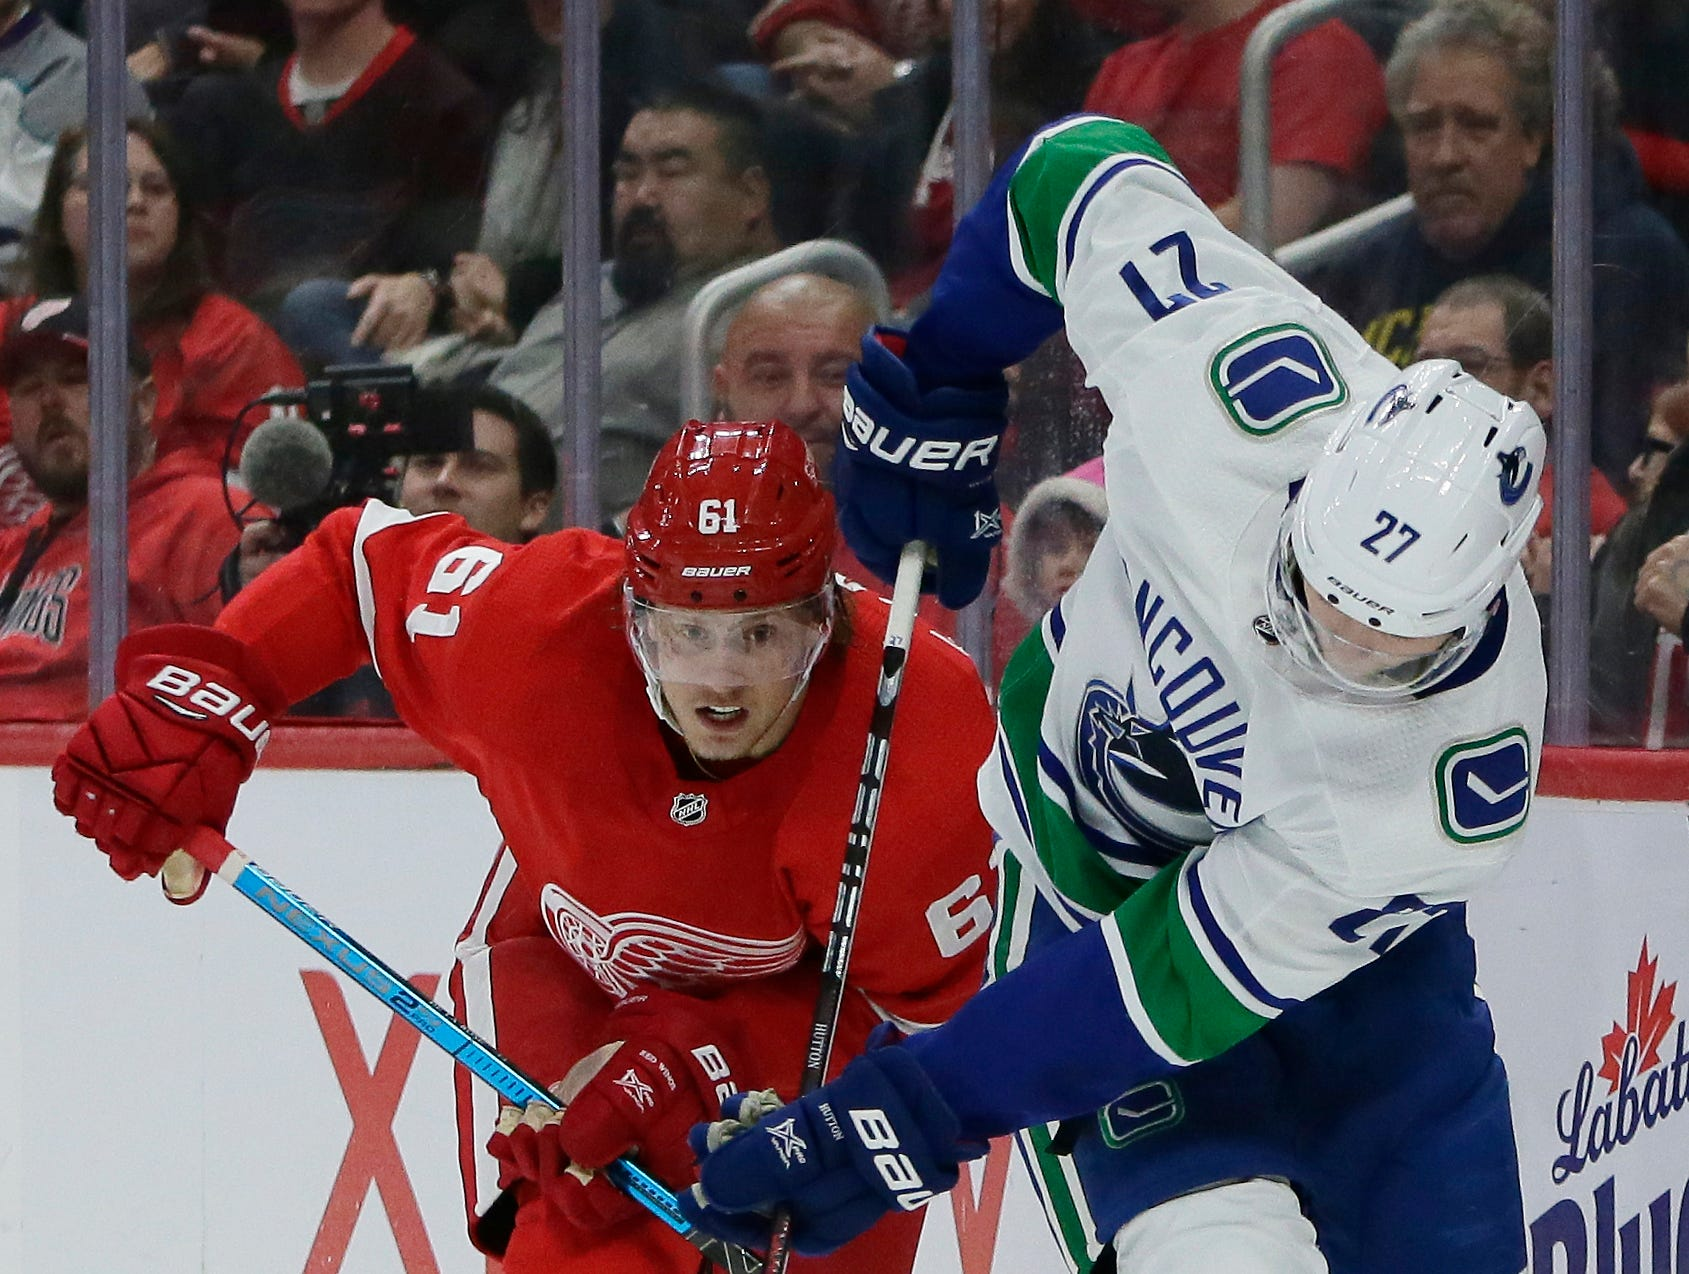 Vancouver Canucks defenseman Ben Hutton (27) is pursued by Detroit Red Wings left wings Jacob de la Rose (61), of Sweden, behind the net during the second period of an NHL hockey game Tuesday, Nov. 6, 2018, in Detroit.